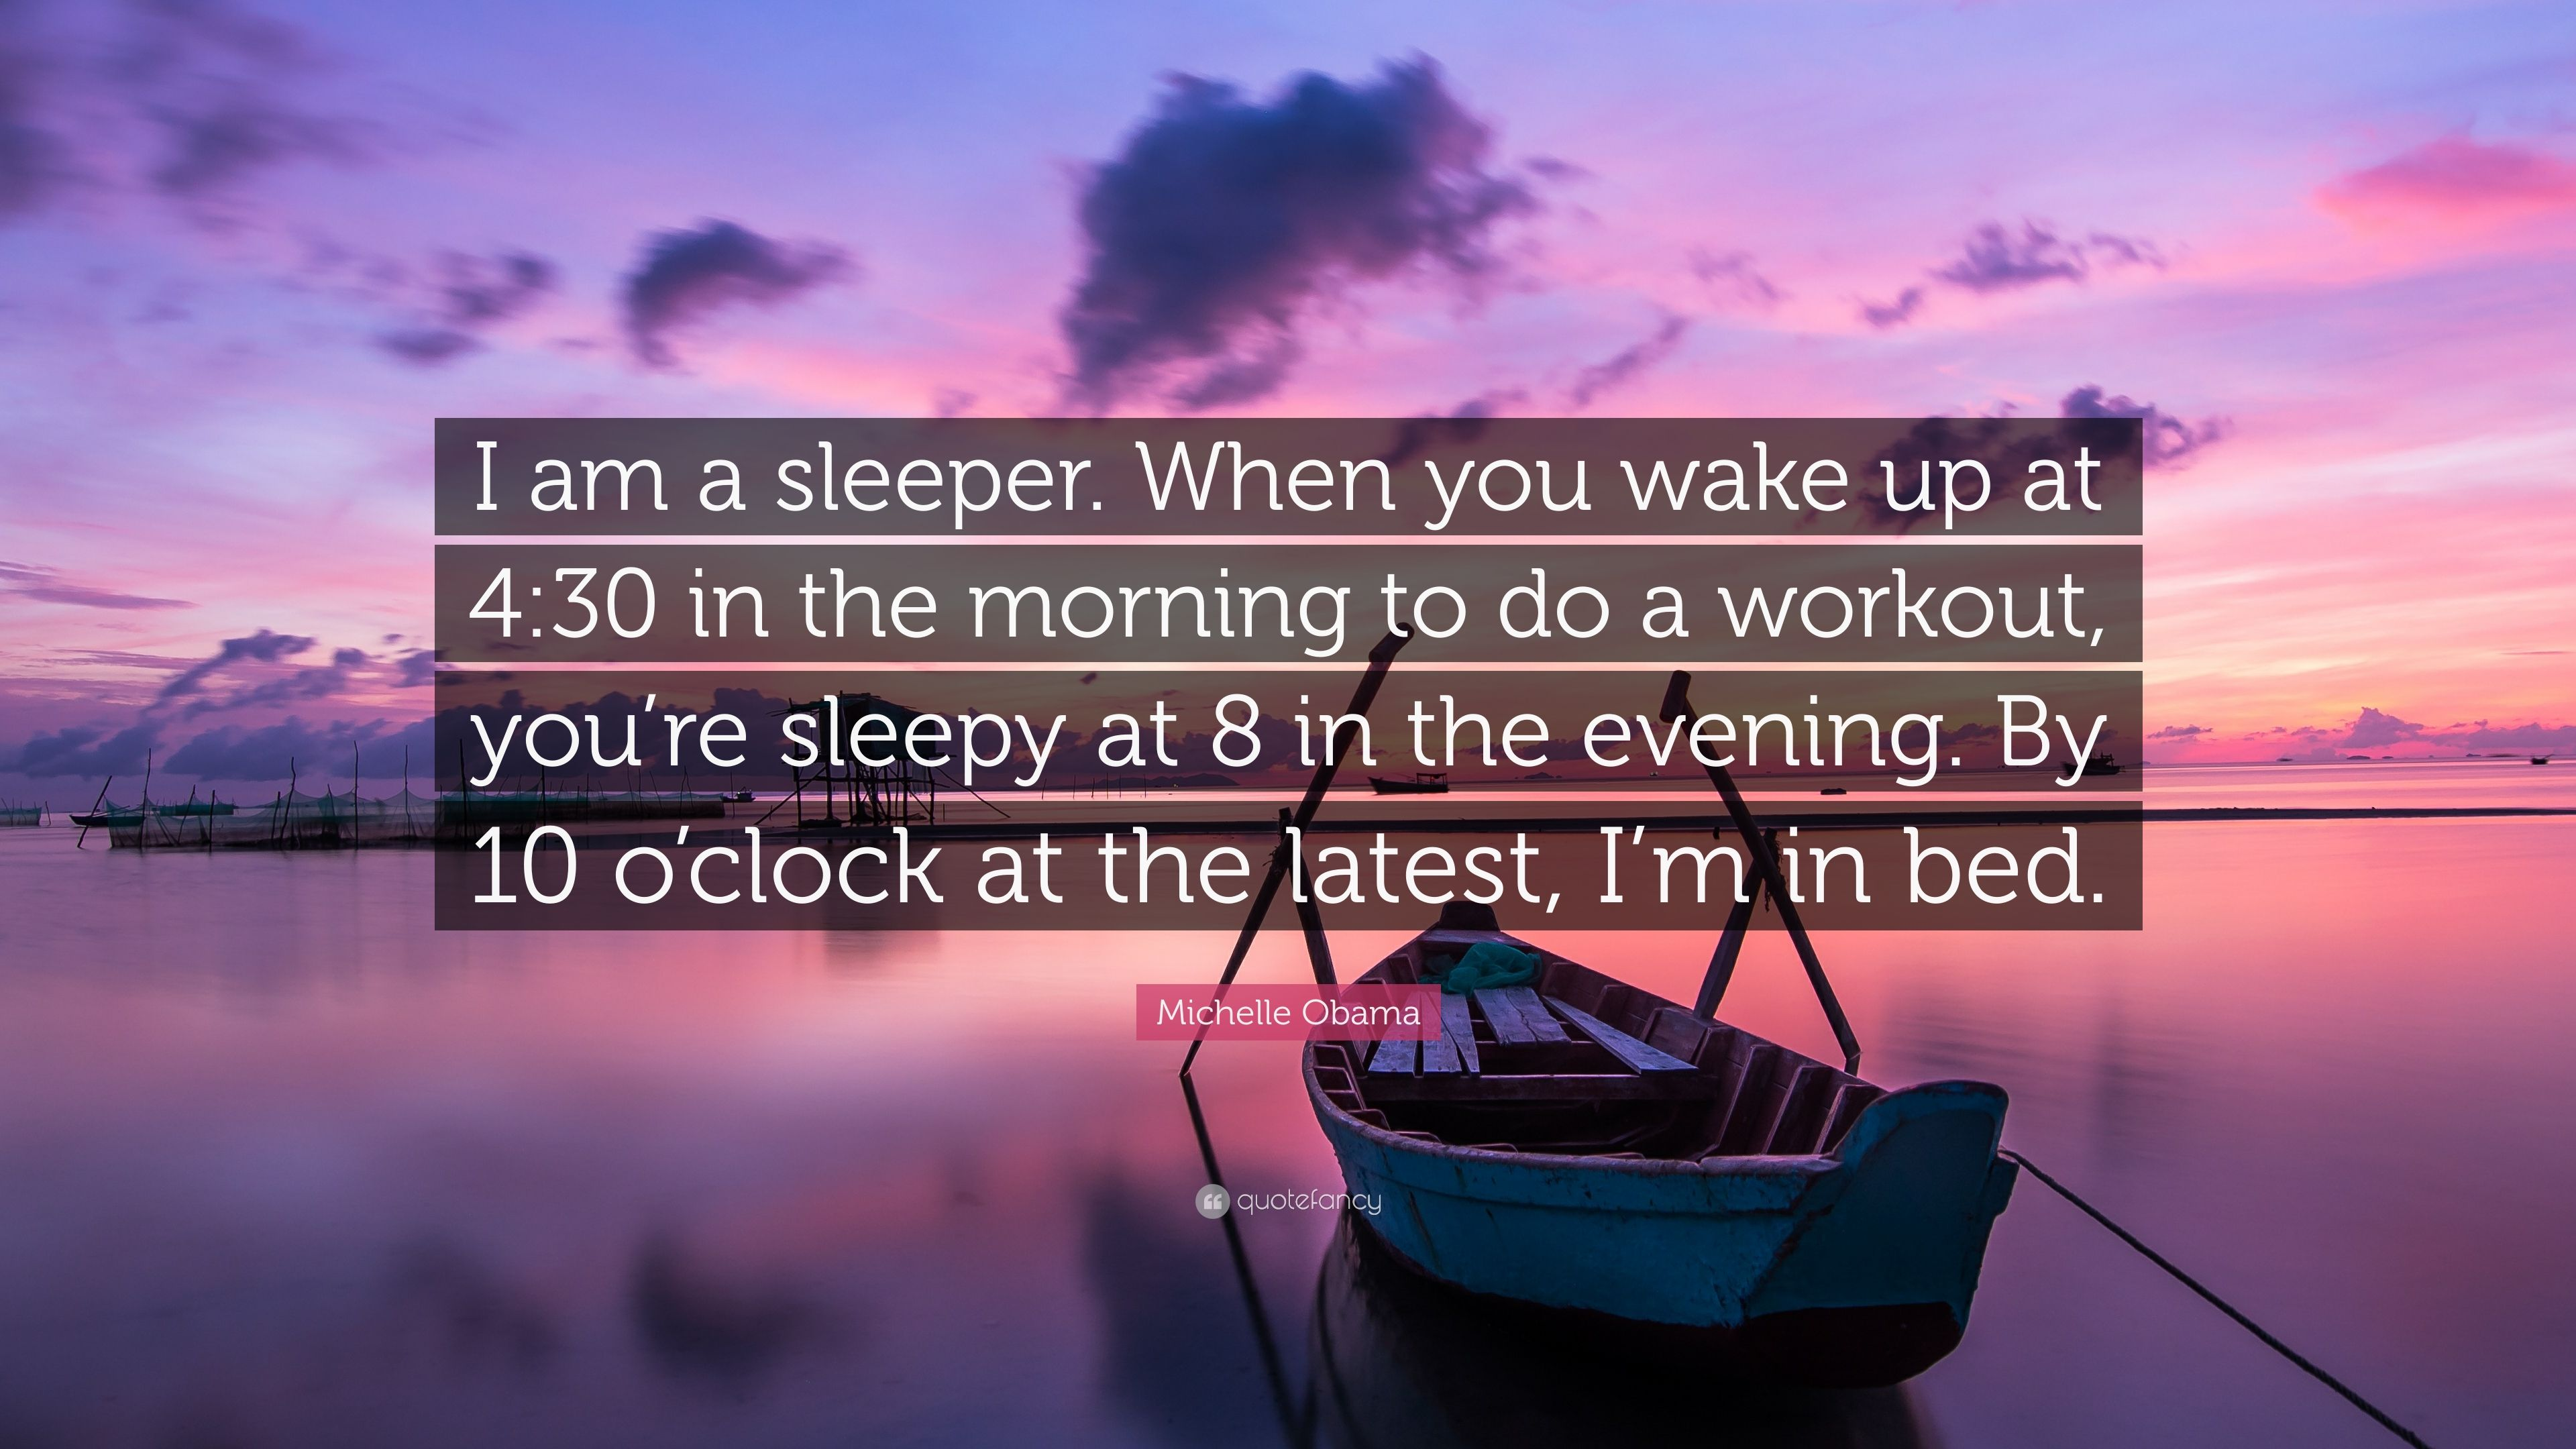 Mic E Obama Quote I Am A Sleeper When You Wake Up At 4